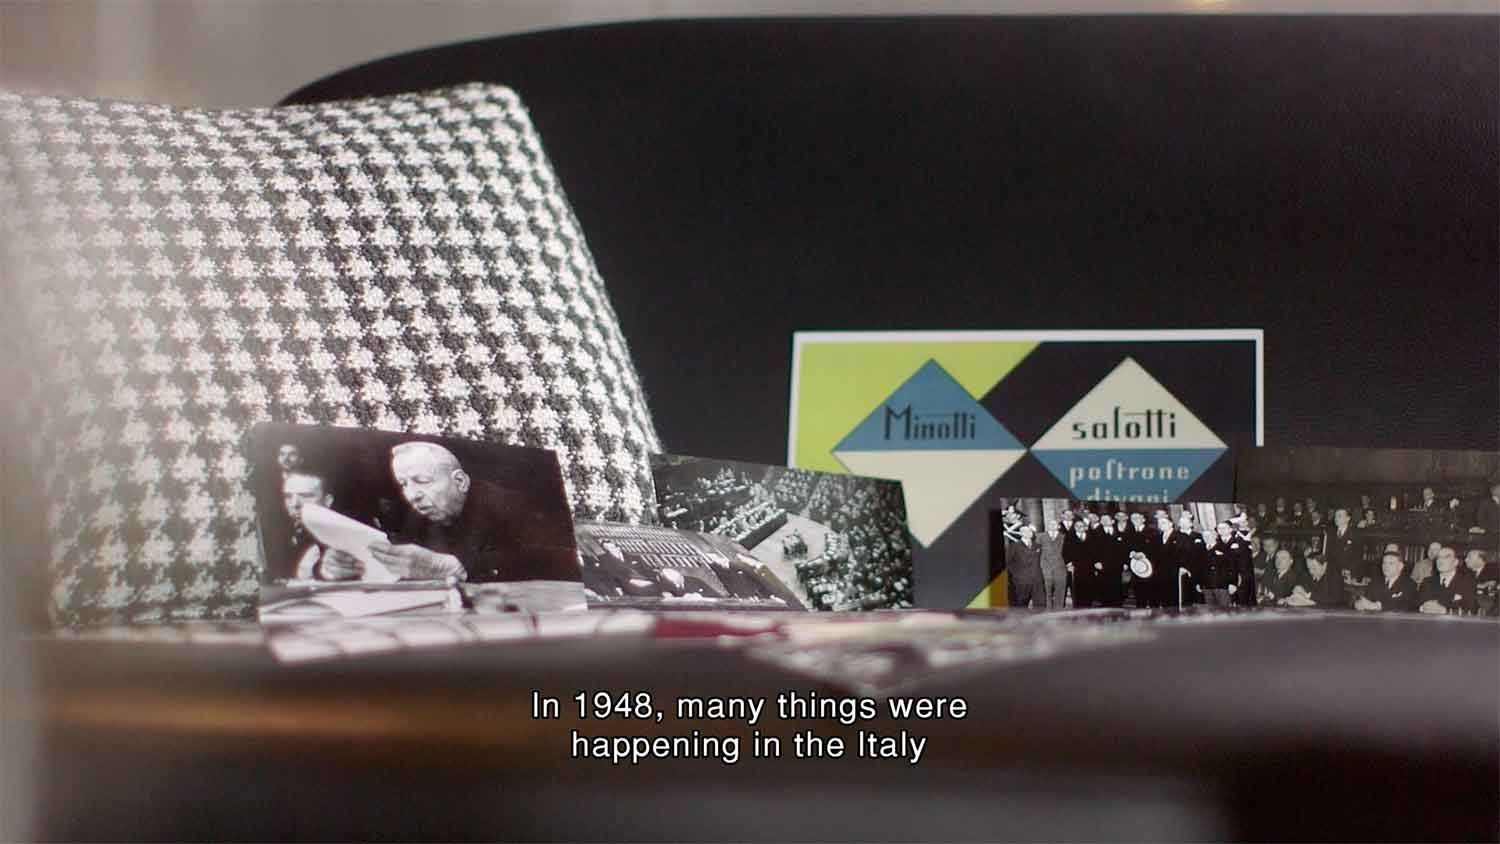 historia-de-Minotti-documental